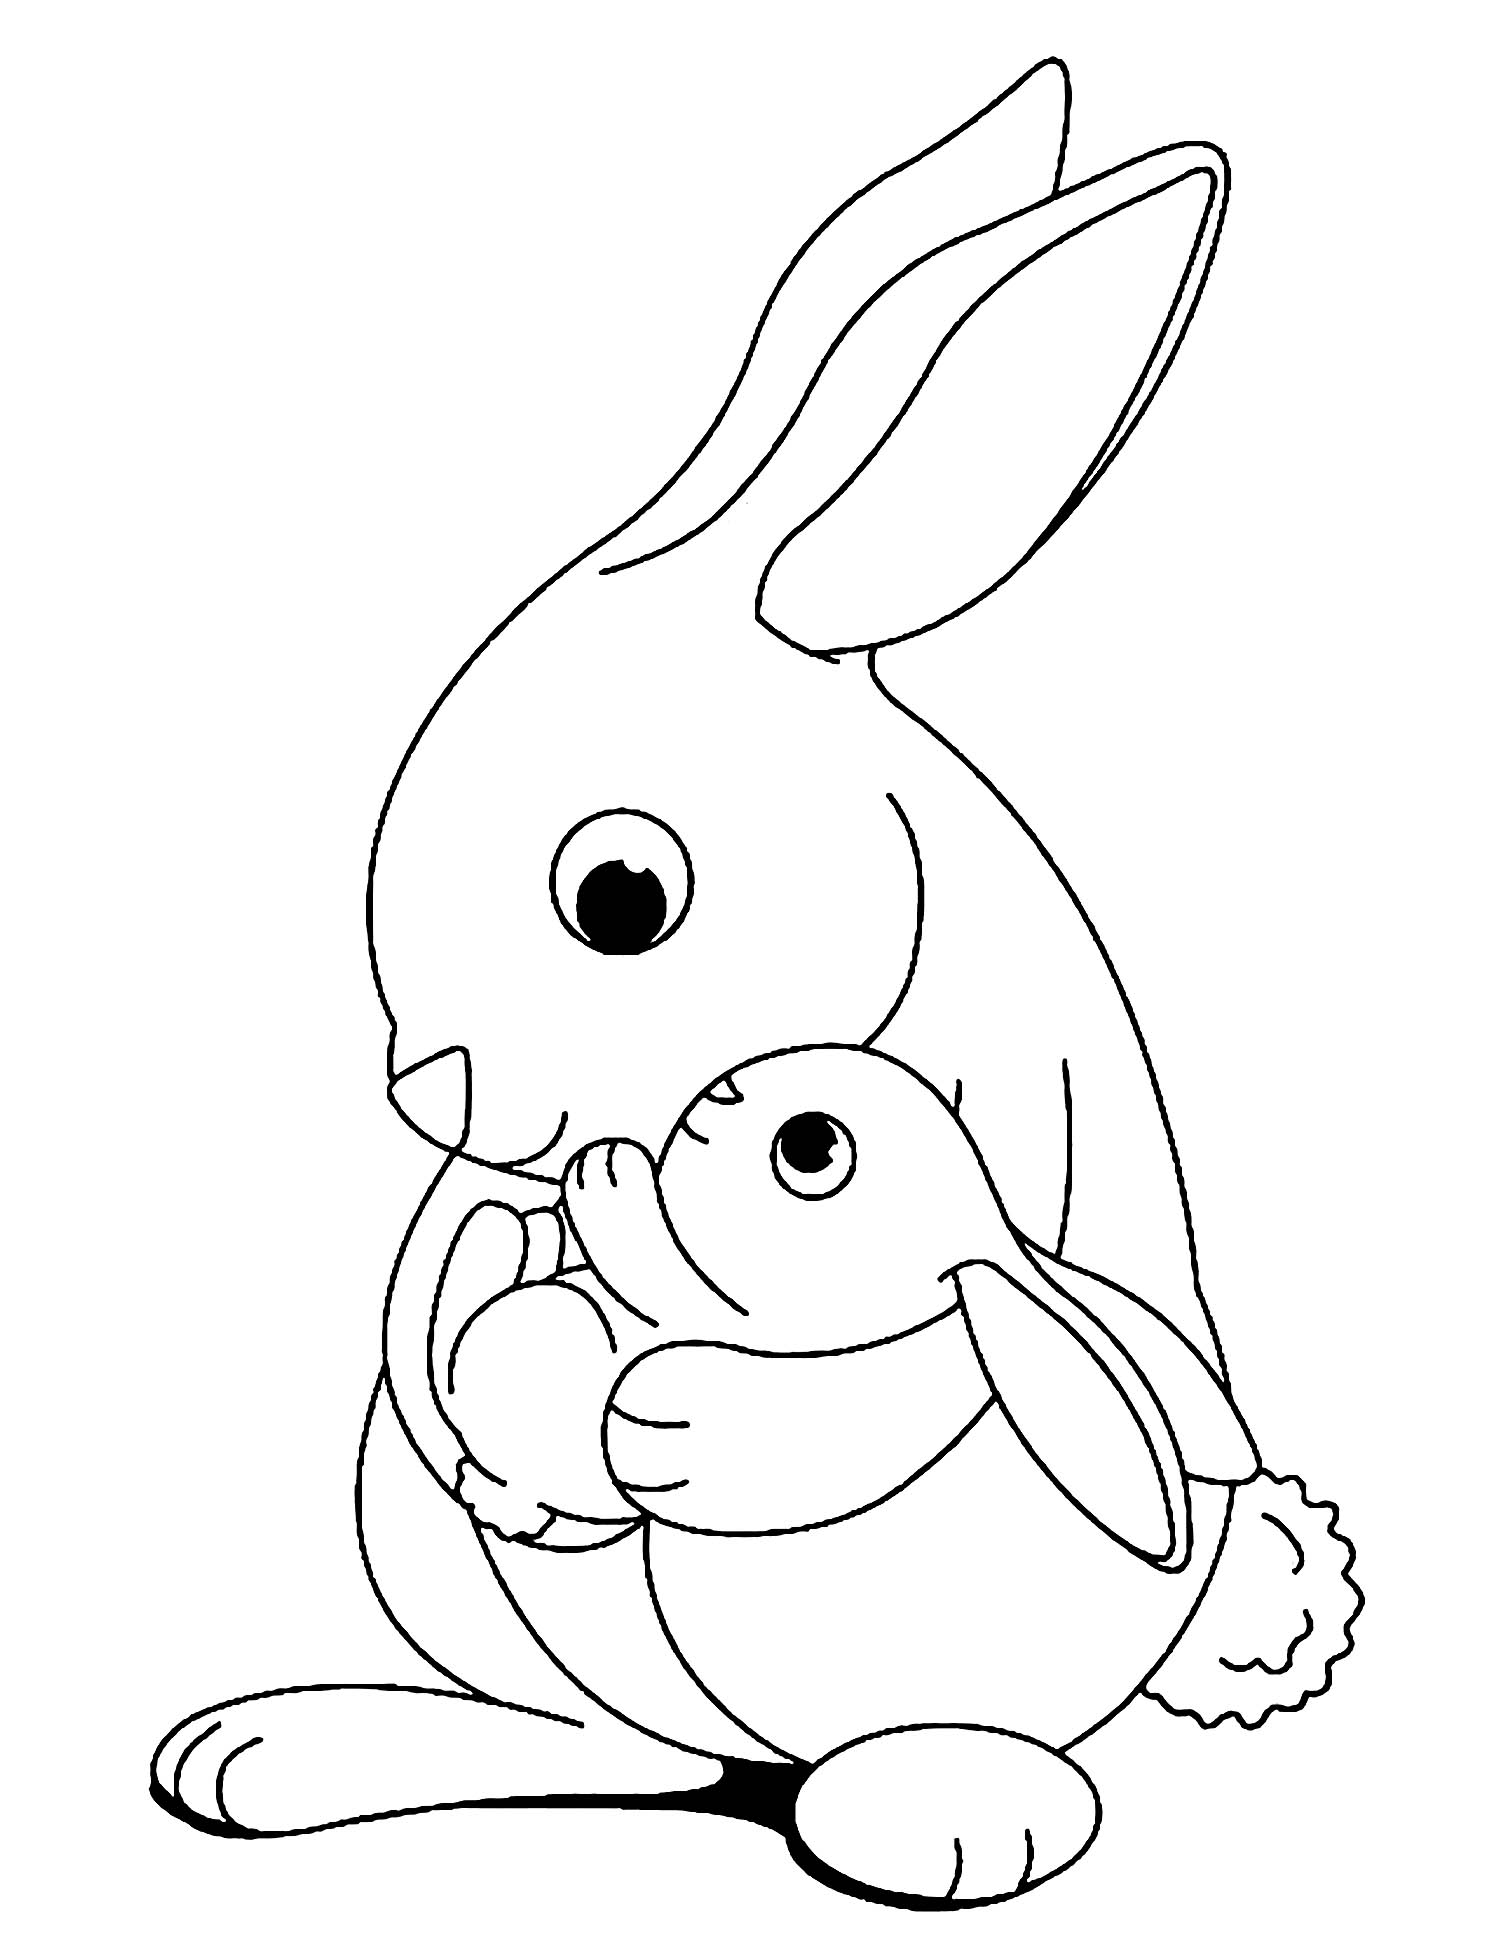 bunny color sheet rabbit to print for free rabbit kids coloring pages color bunny sheet